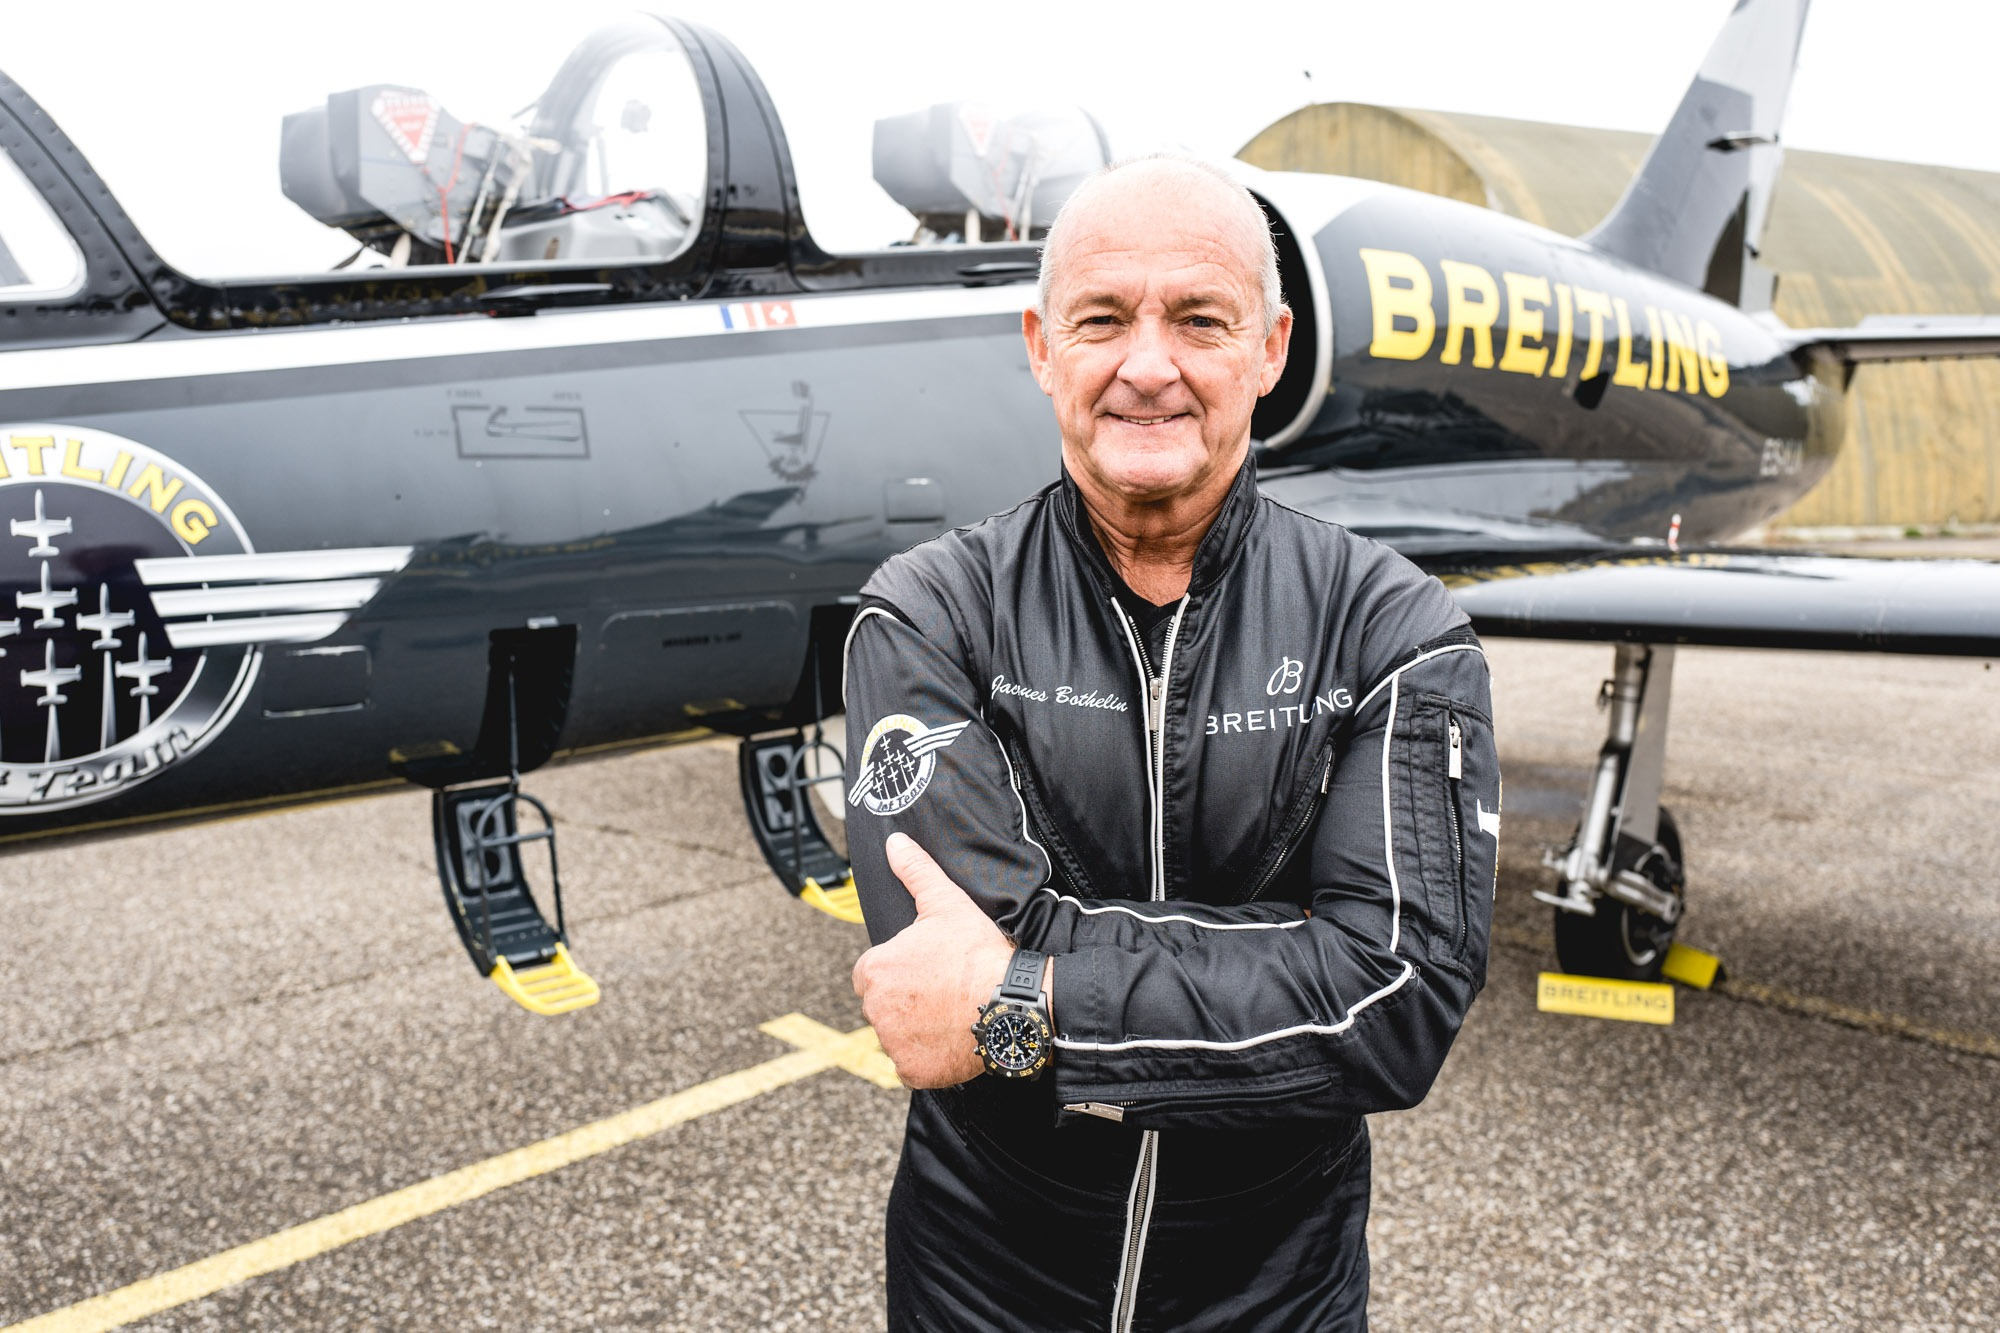 Breitling Jet Team - Jacques Bothelin